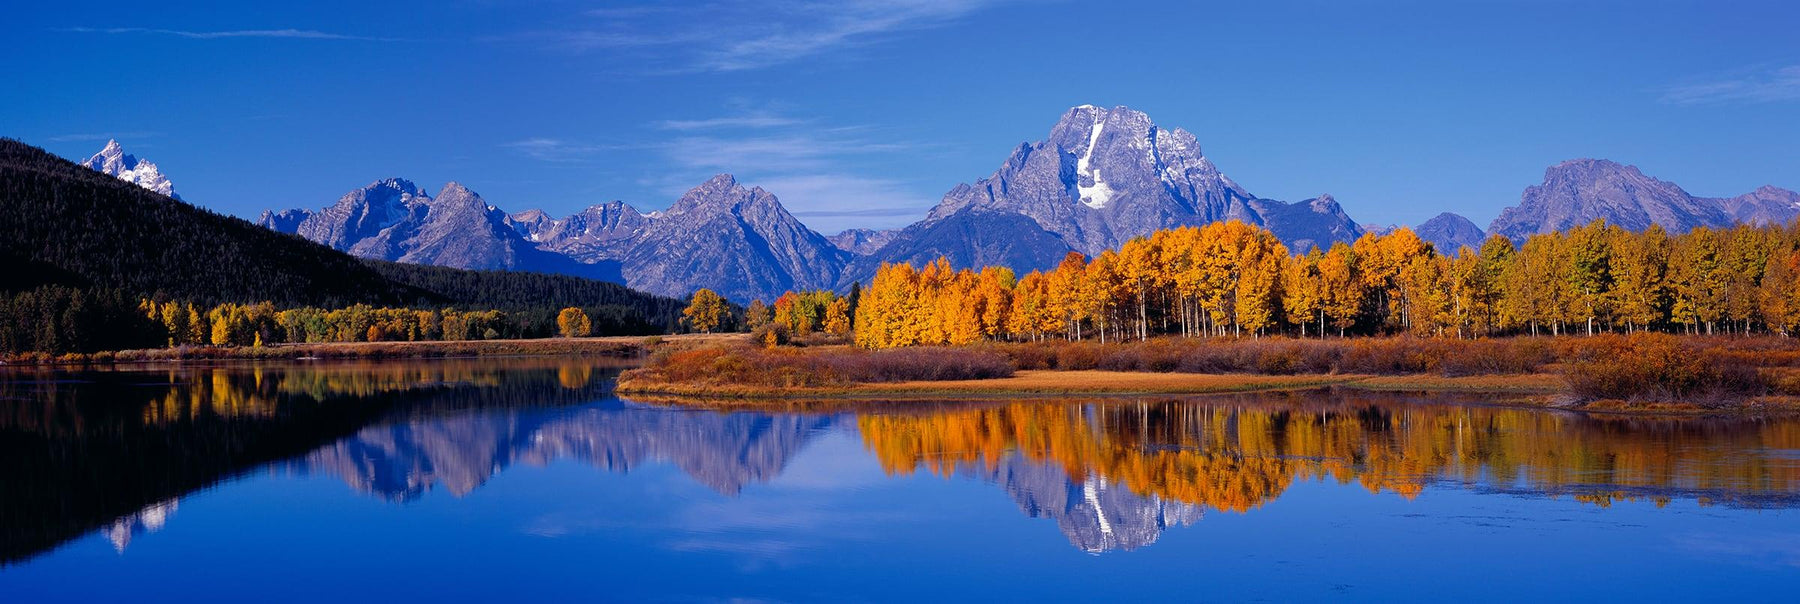 Autumn colored forest reflecting into the Snake River with the Grand Teton Mountains in the background